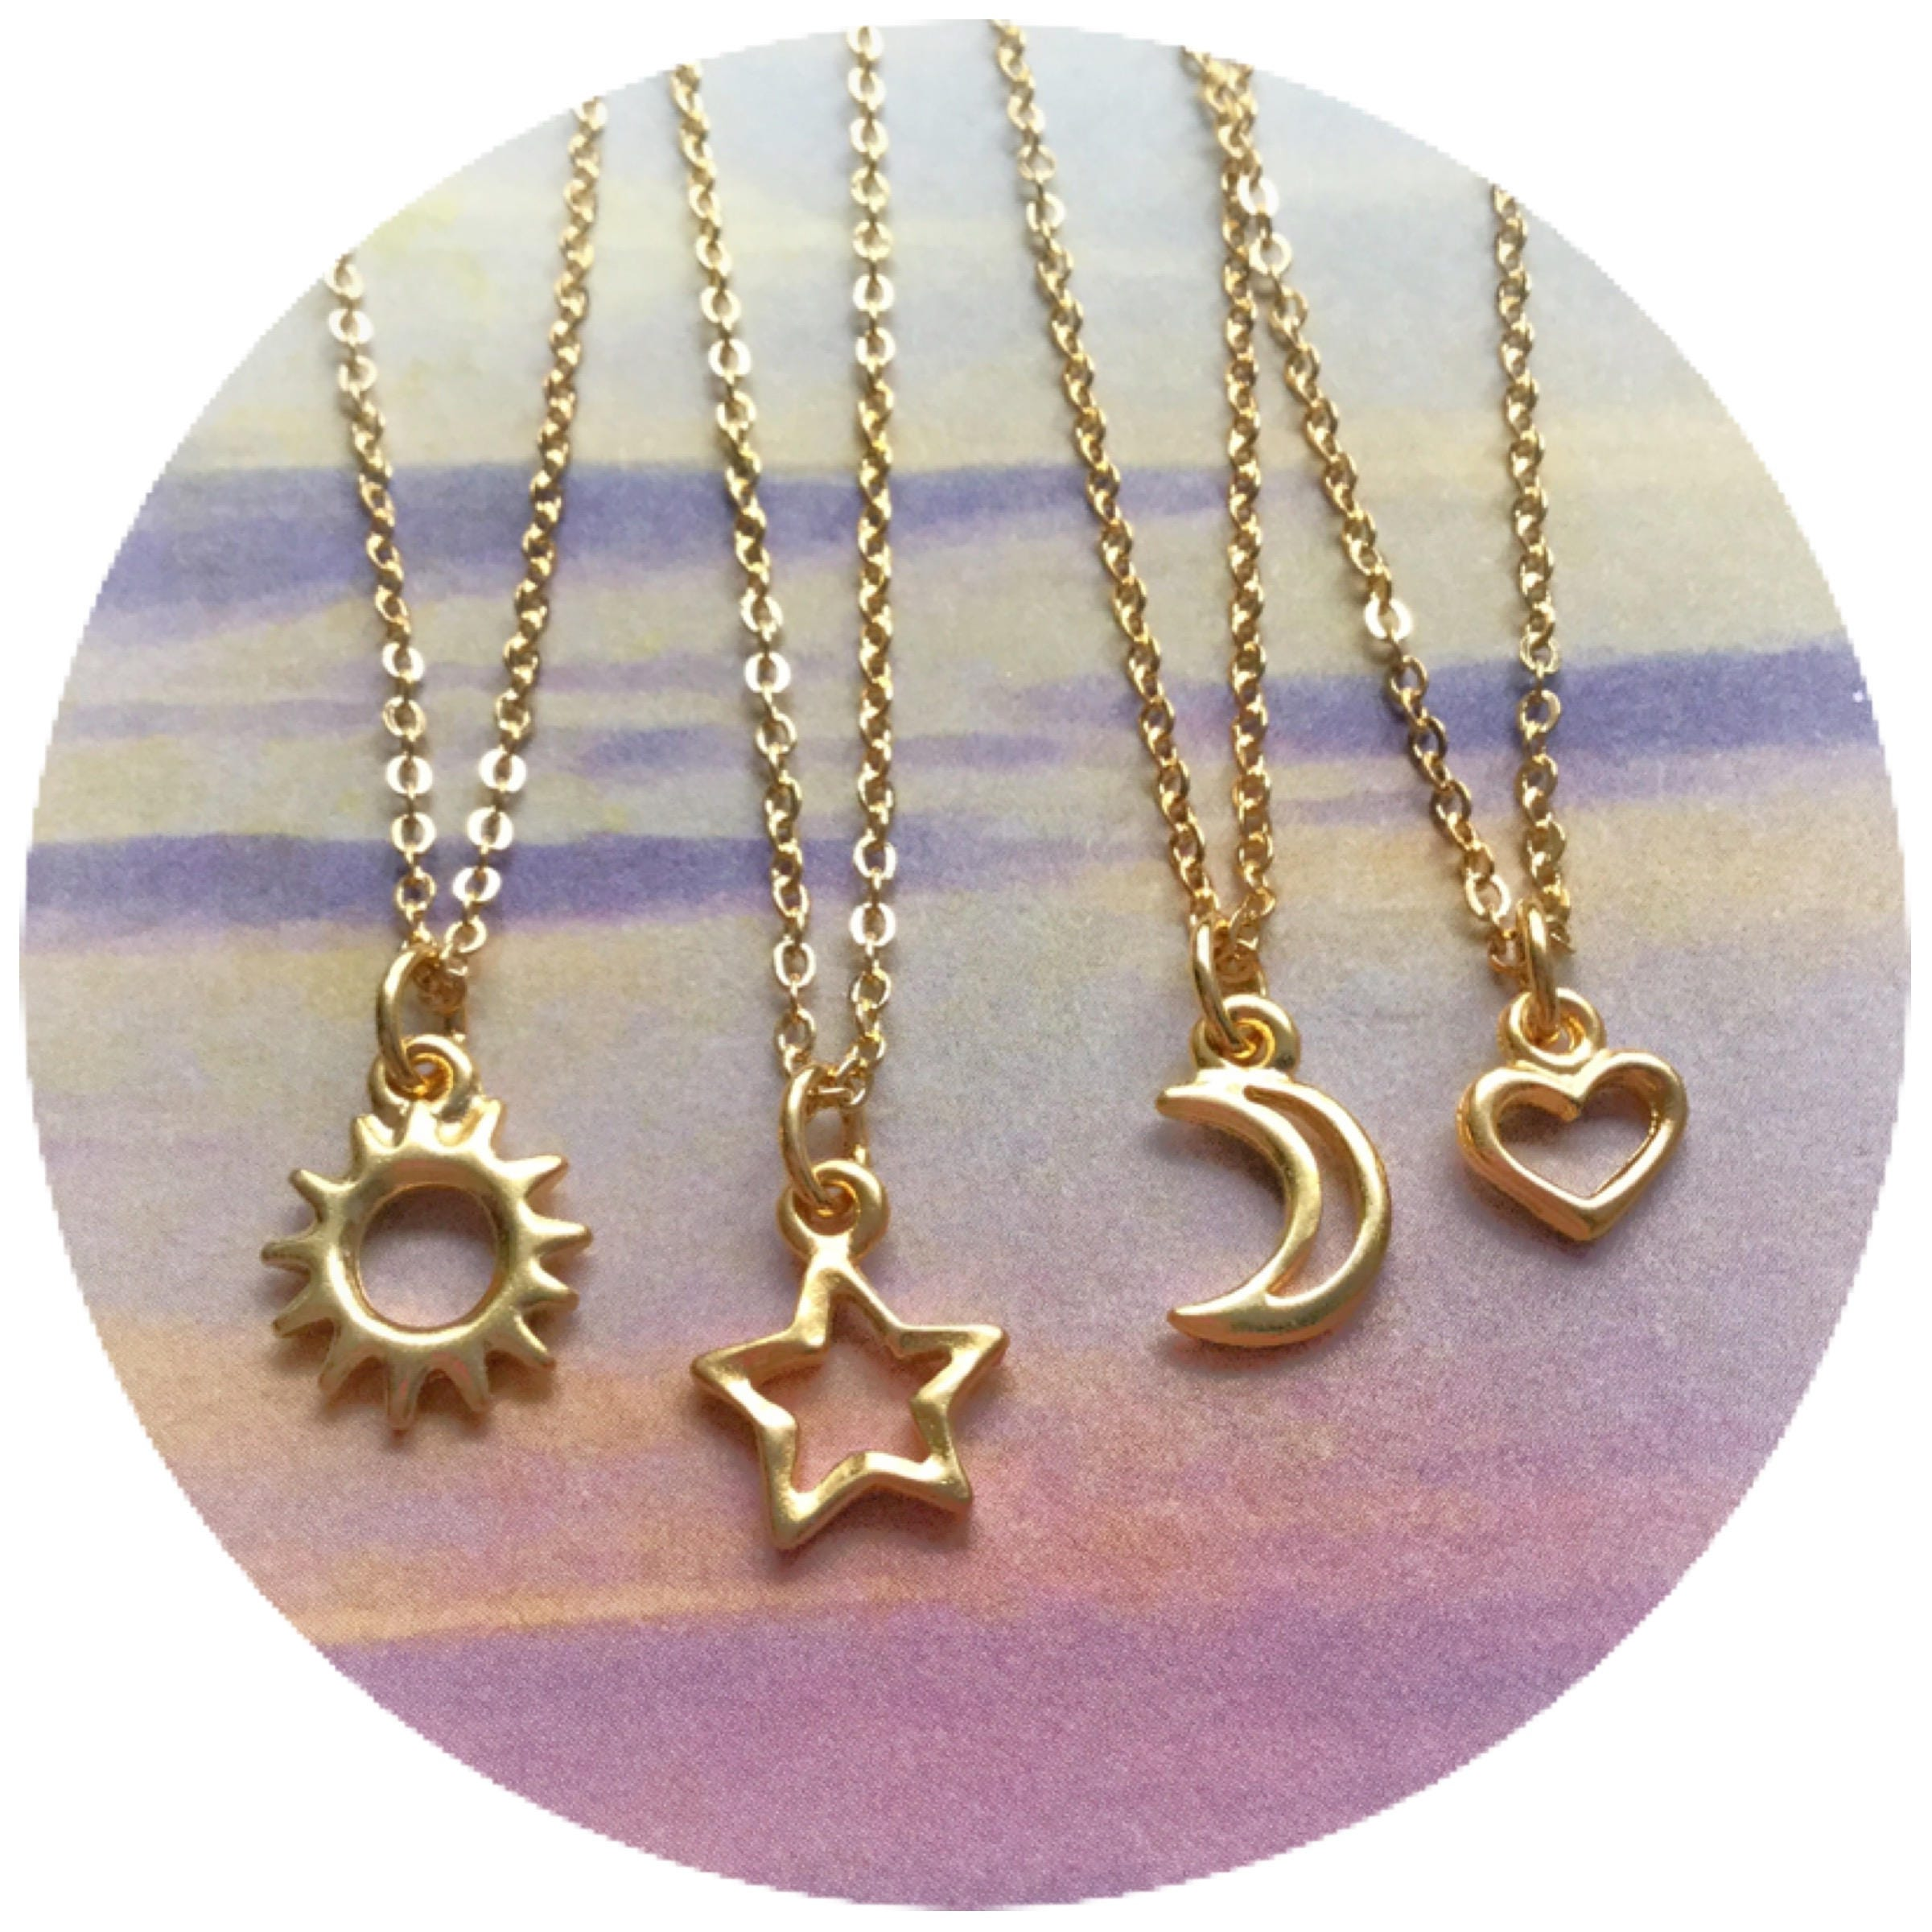 silver sun necklace myshoplah jewelry star or moon dainty